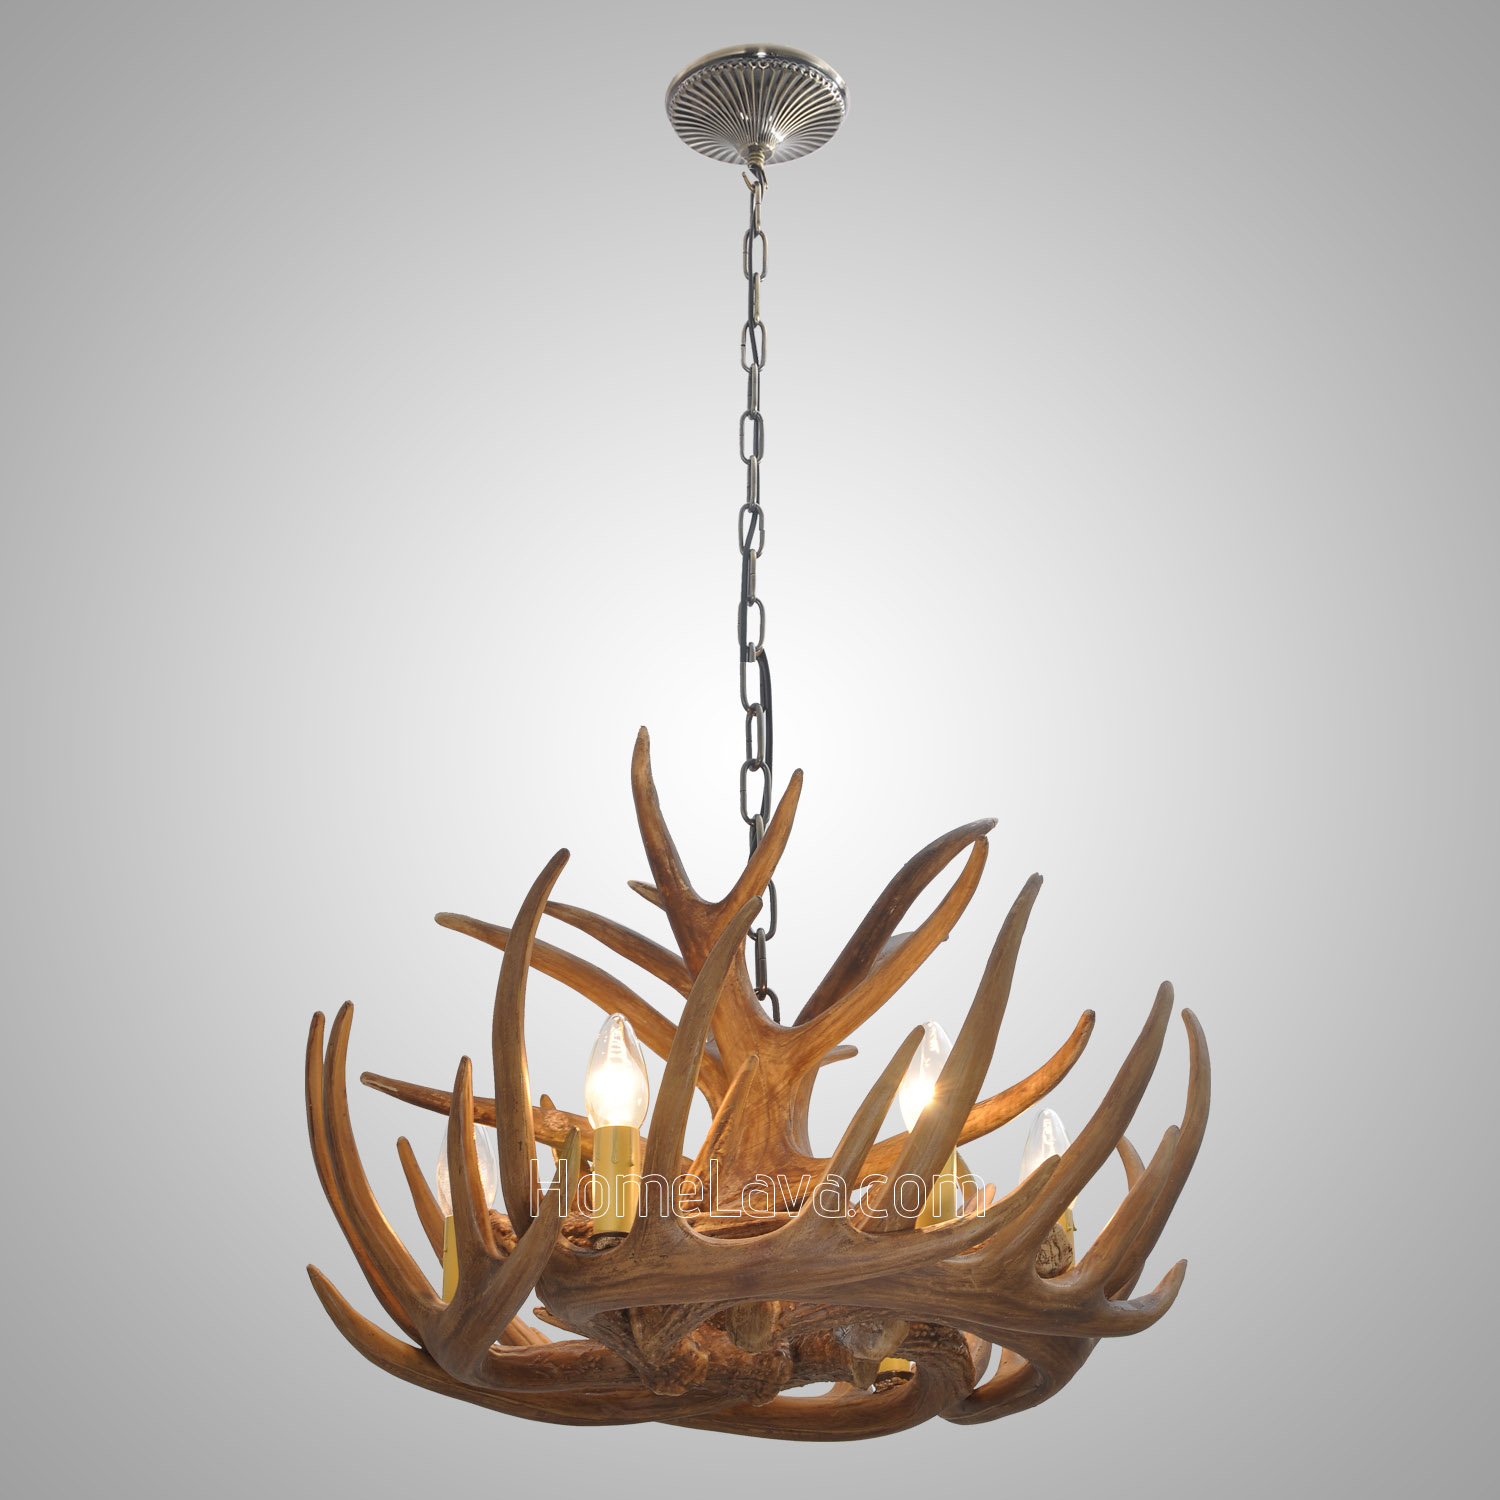 Antler 6 Light Chandelier Rustic Cascade Ceiling Light